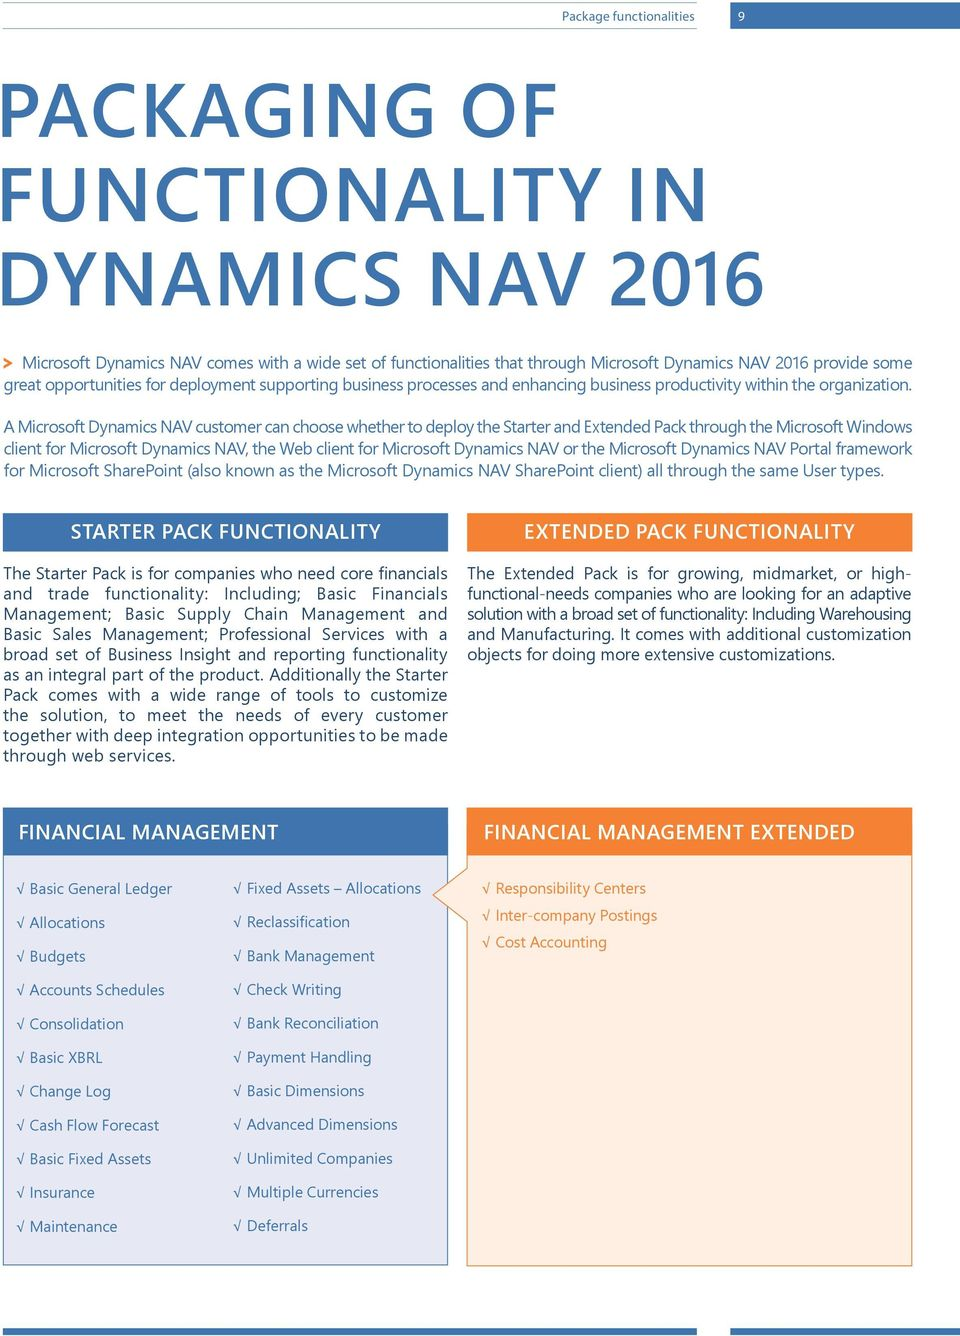 A Microsoft Dynamics NAV customer can choose whether to deploy the Starter and Extended Pack through the Microsoft Windows client for Microsoft Dynamics NAV, the Web client for Microsoft Dynamics NAV